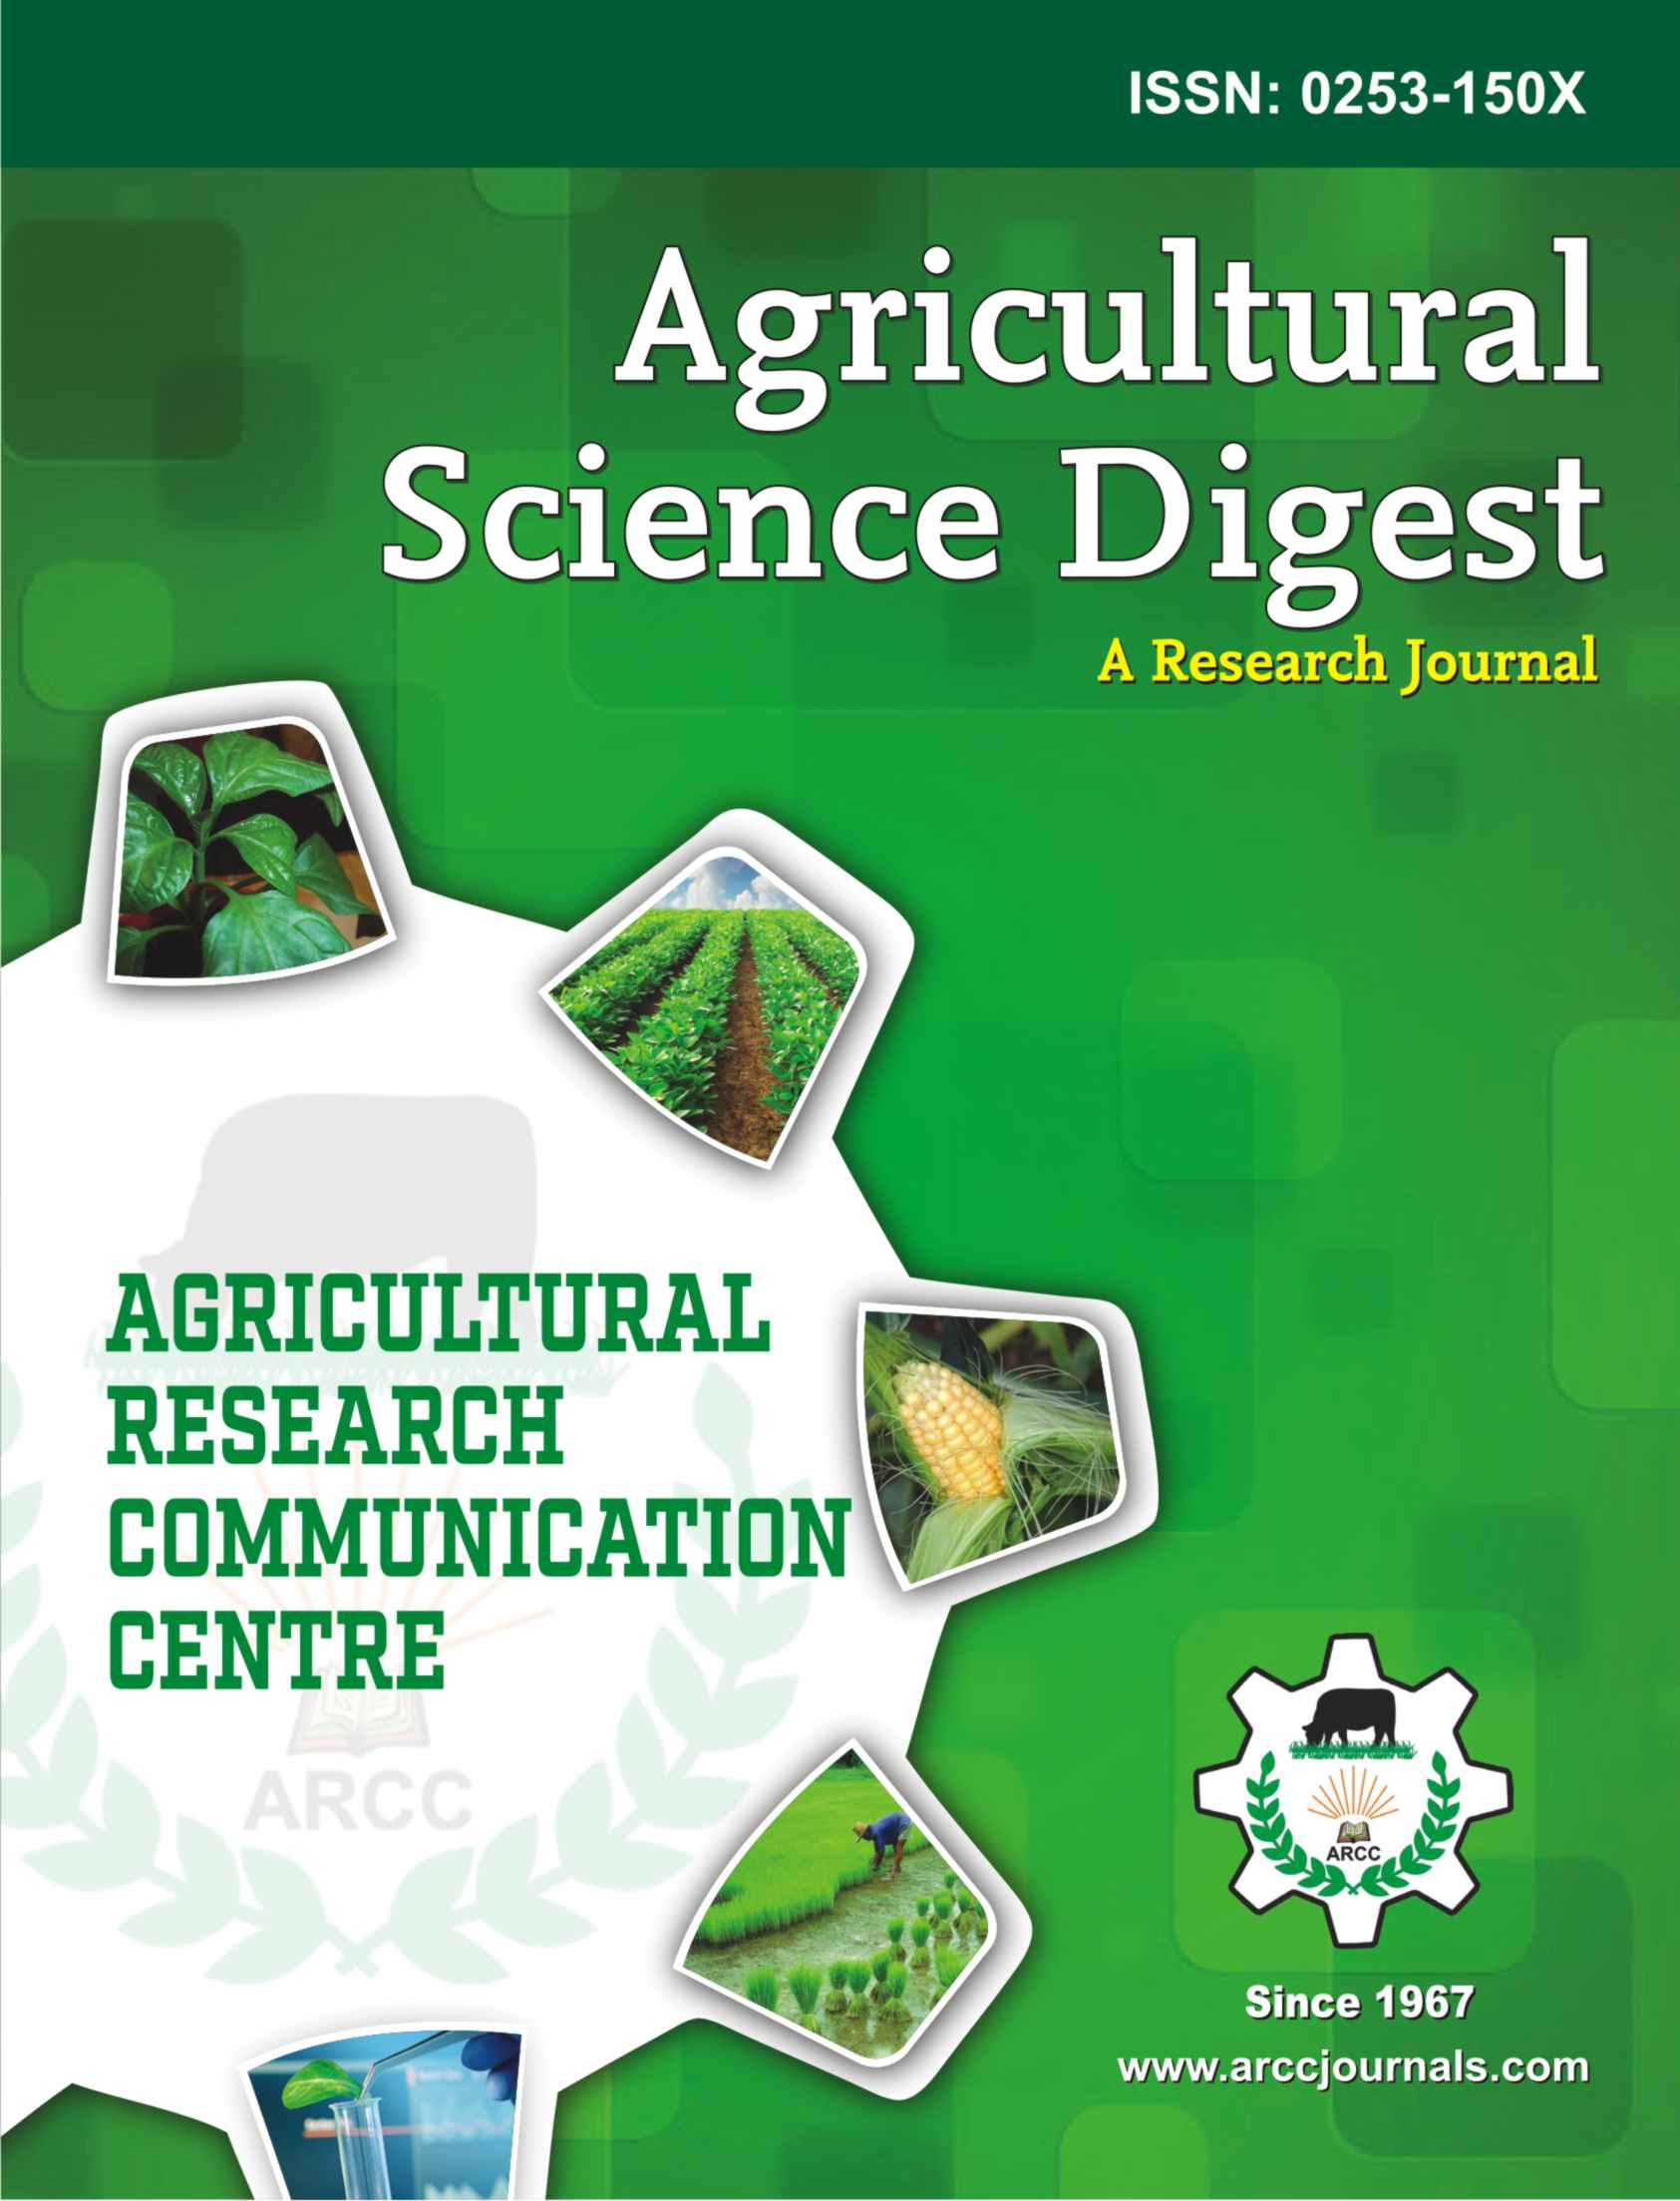 Agricultural Science Digest Advertisement